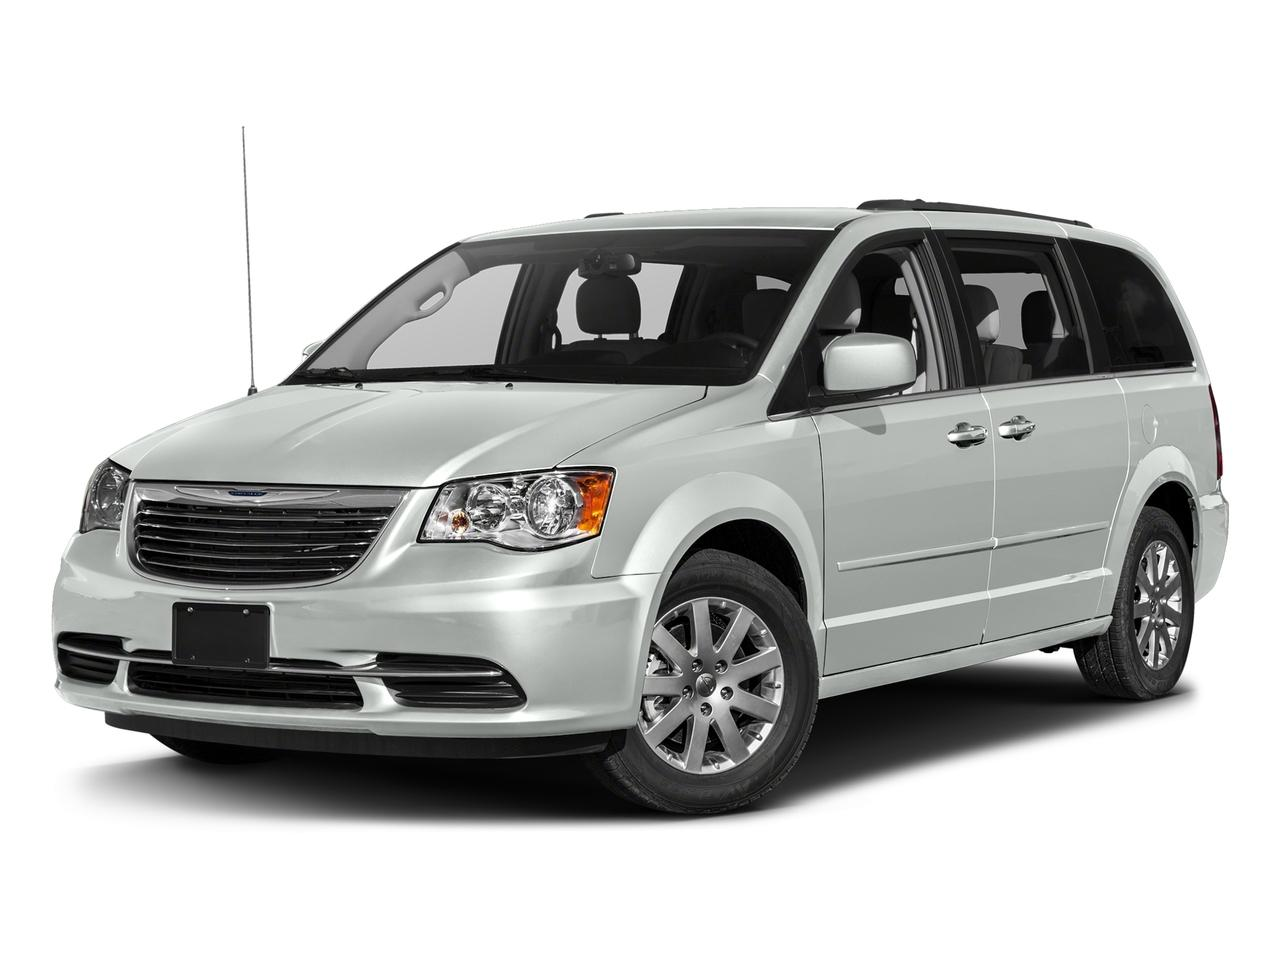 2016 Chrysler Town & Country Vehicle Photo in Akron, OH 44303